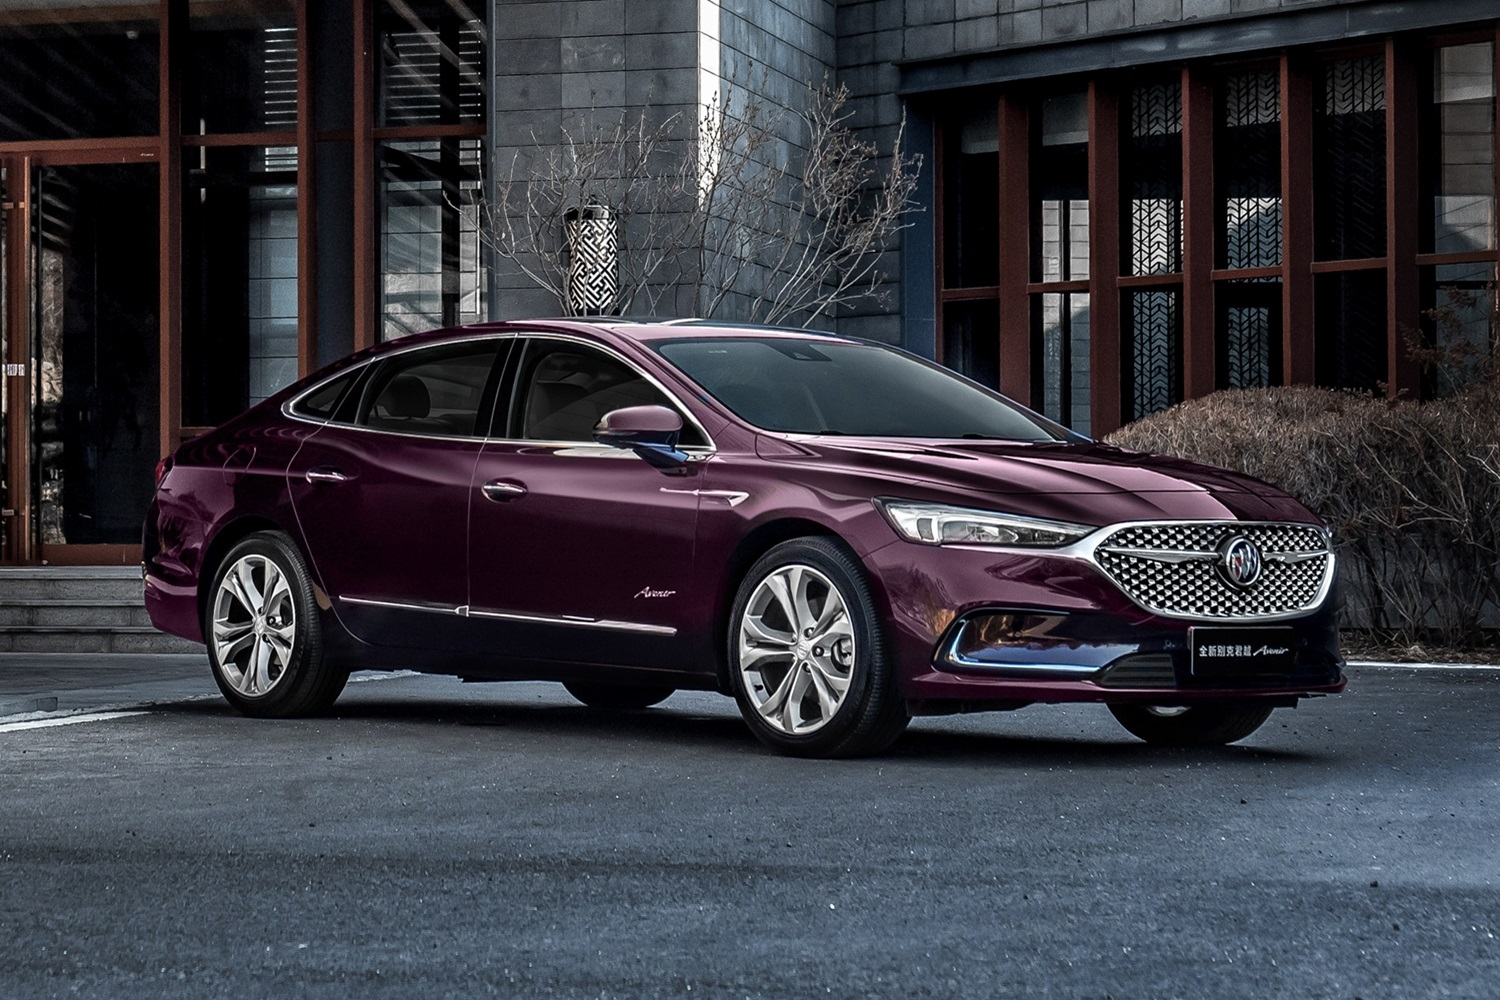 2021 Buick Lacrosse Gets More Refined Than Ever | Gm Authority Price Of A New 2021 Buick Lacrosse